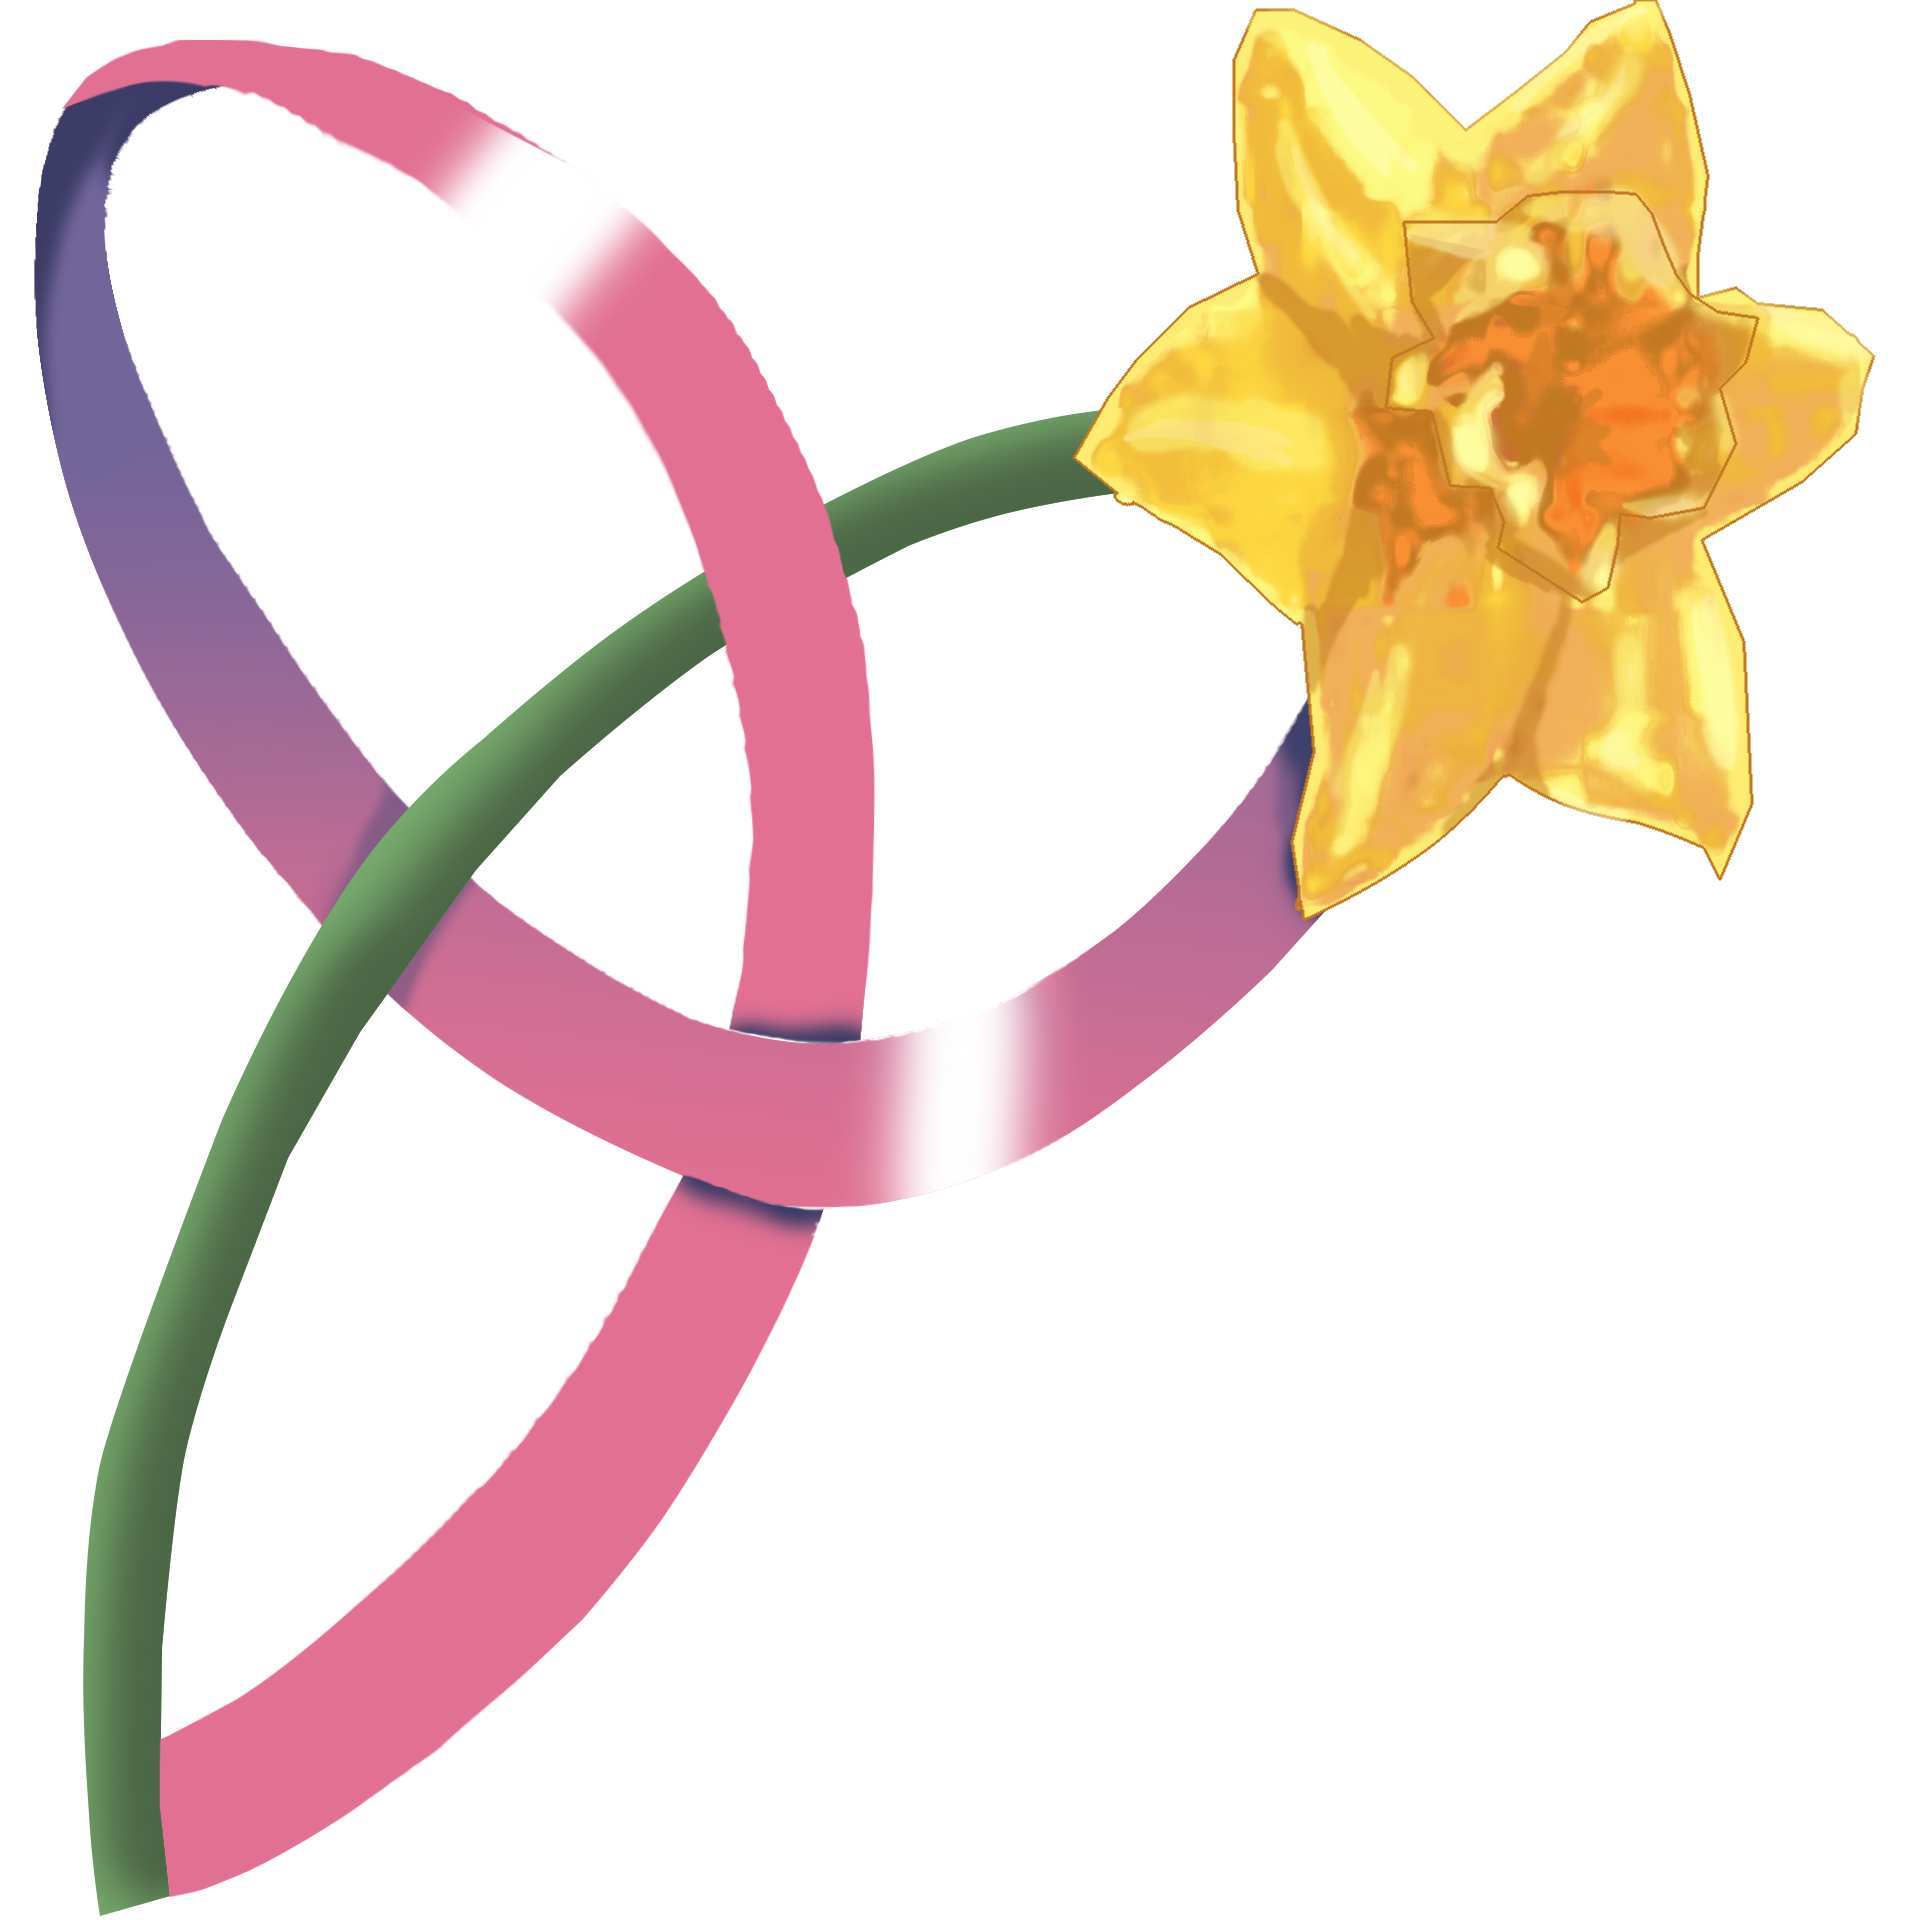 Daffodil clipart relay for life. Mary s biography k